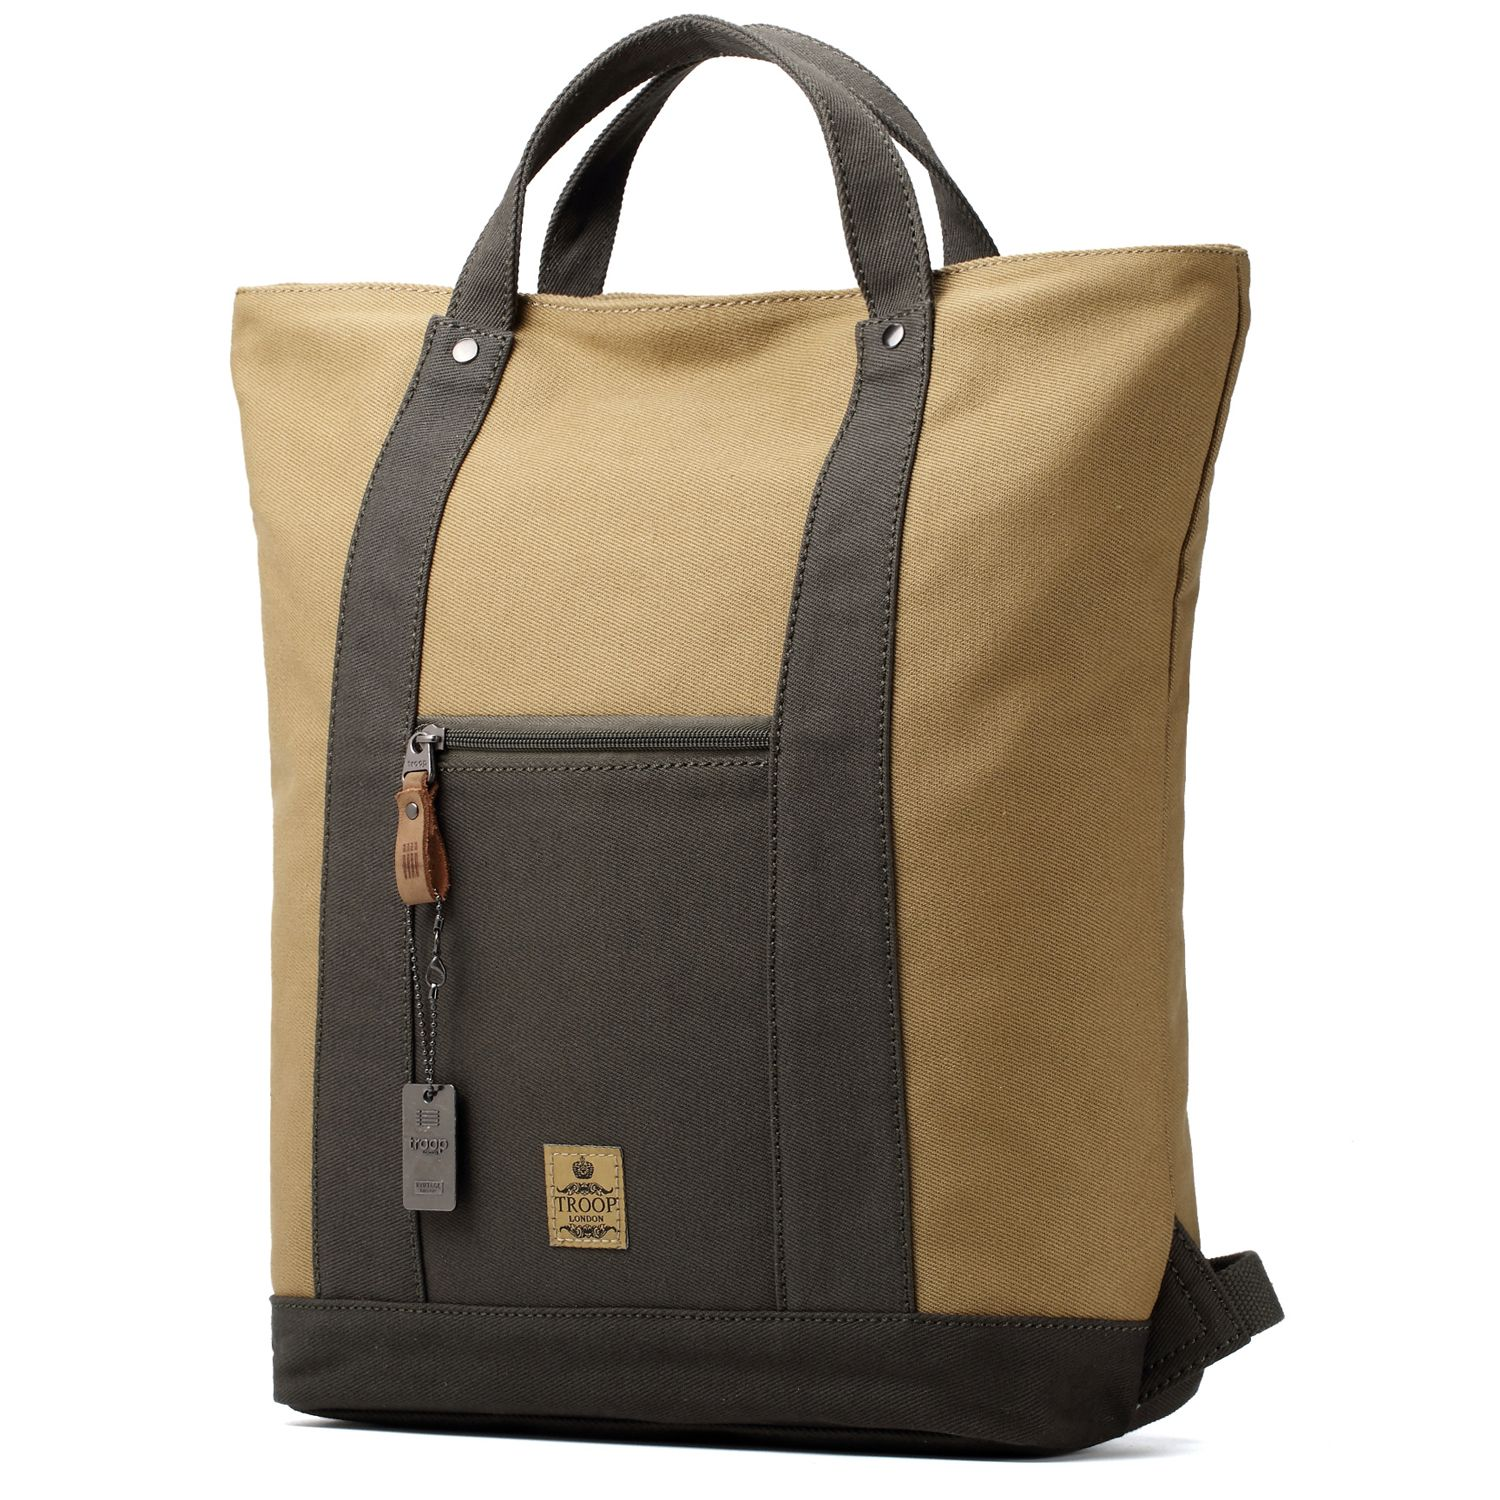 dfa6fd8669 Troop London TRP0420 Twill Cotton Canvas Tote Backpack Green Camel ...